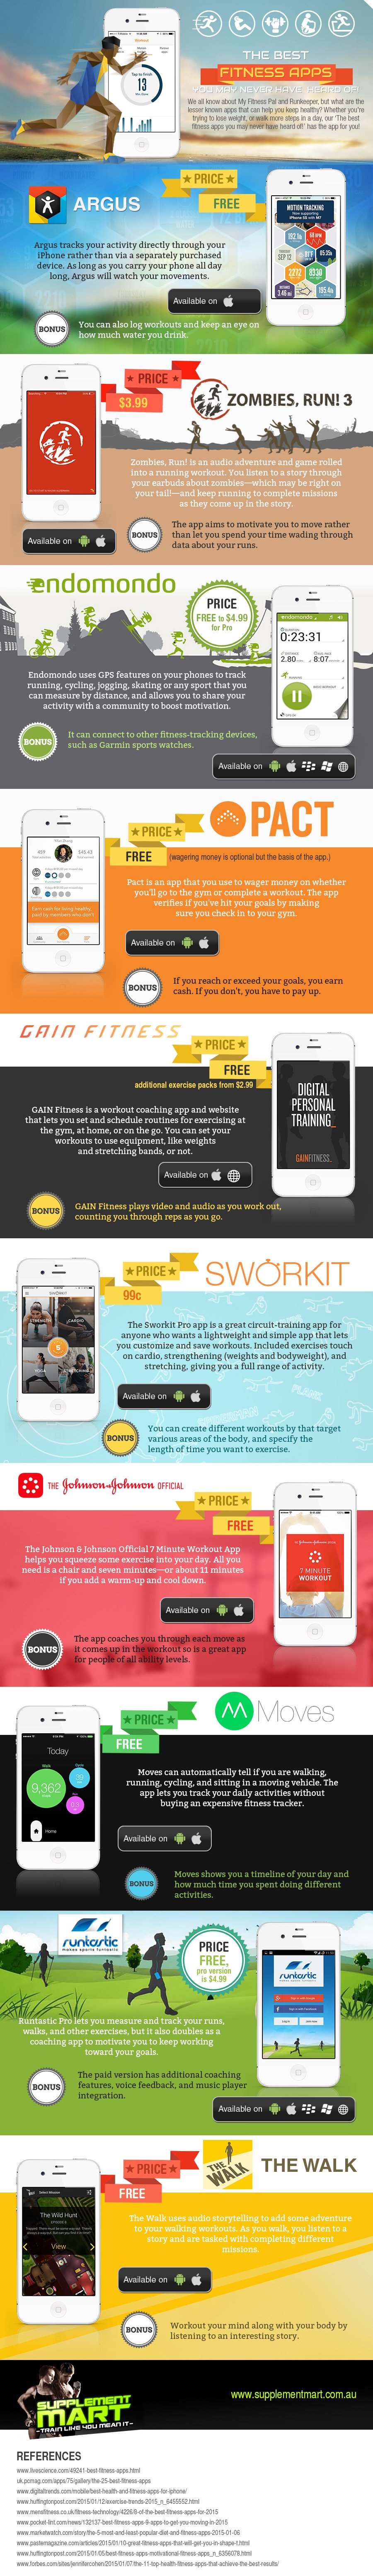 The-Best-Fitness-Apps-Infographic